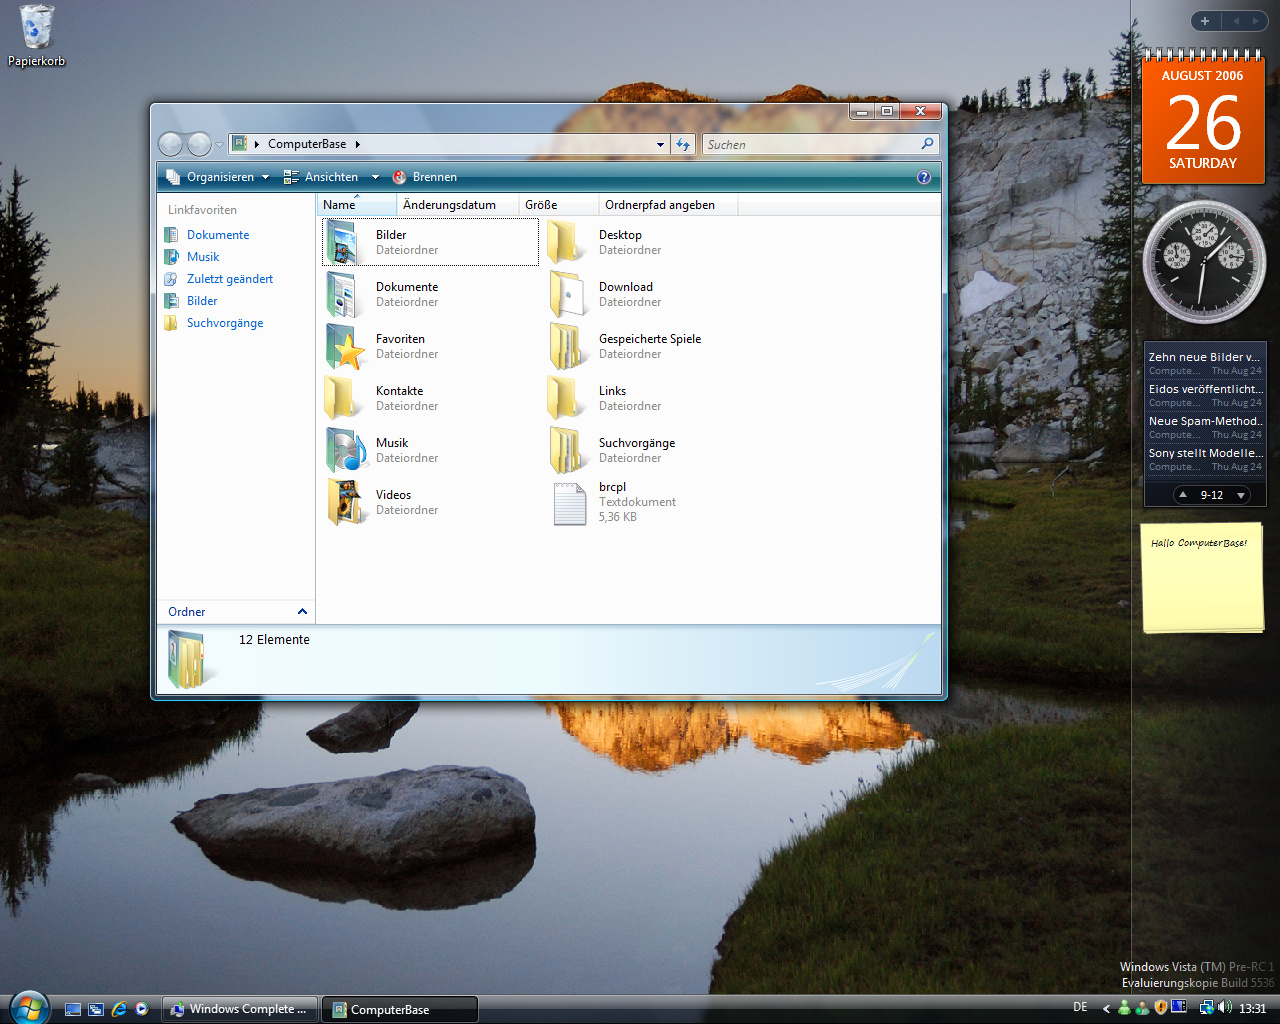 Windows Vista Build 5536 - Explorer Eigene Dateien